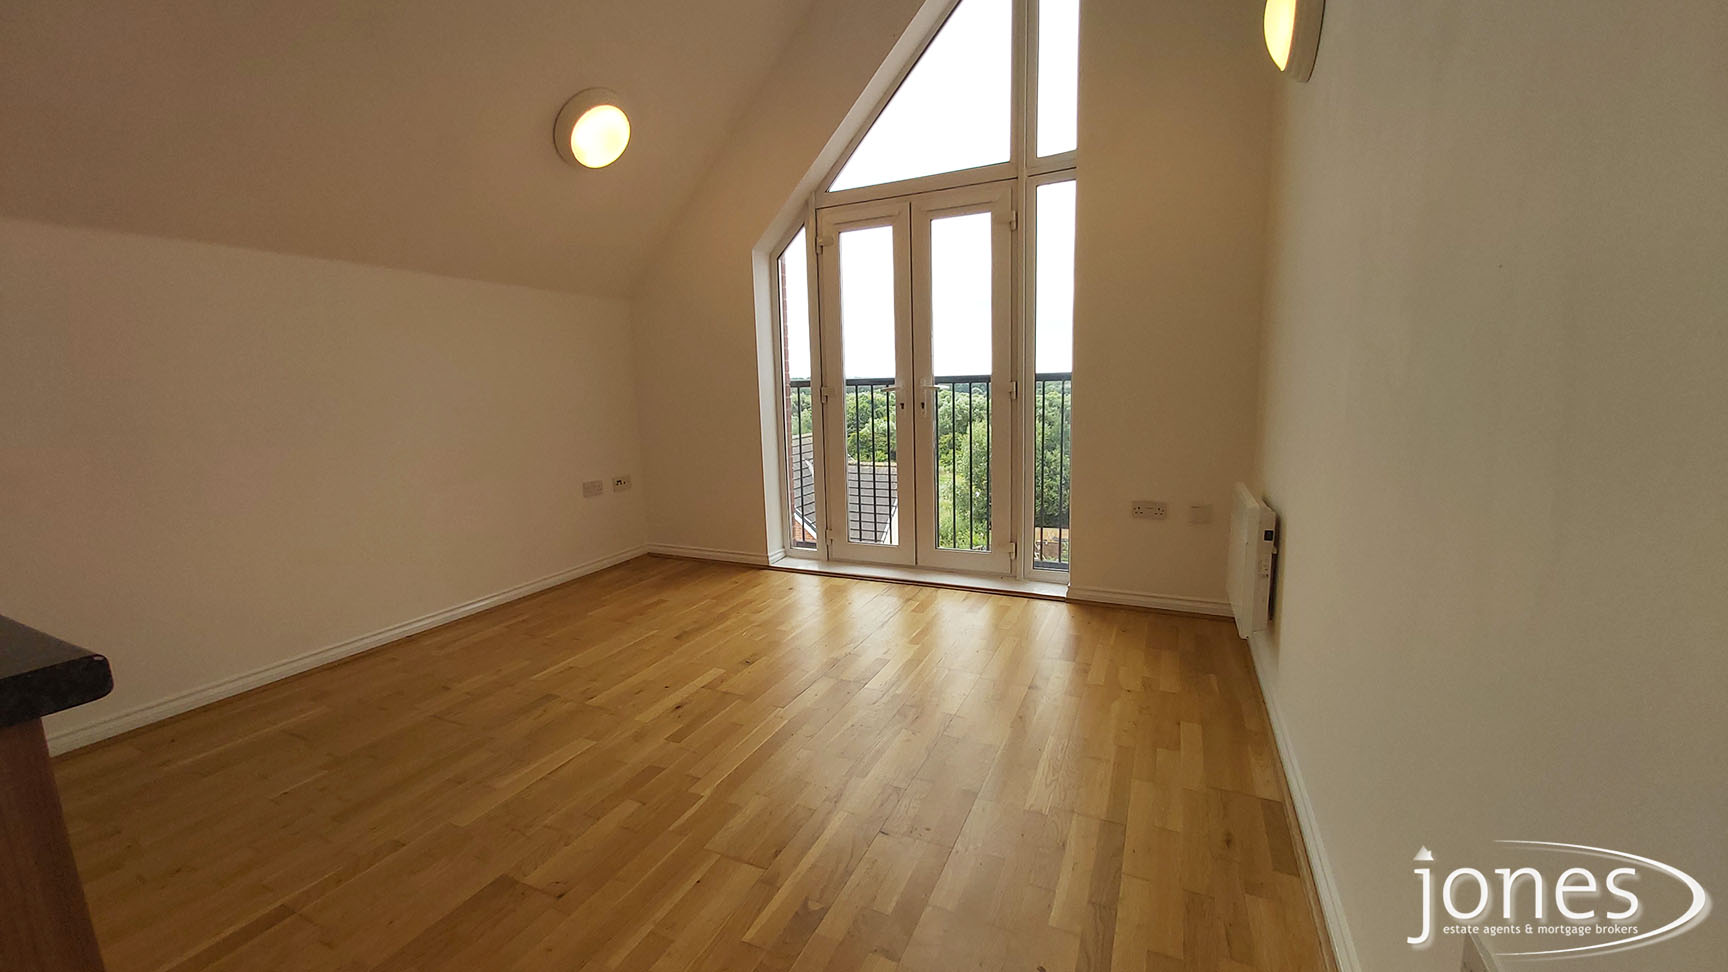 Home for Sale Let - Photo 02 Willow Sage Court, Stockton on Tees, TS18 3UQ